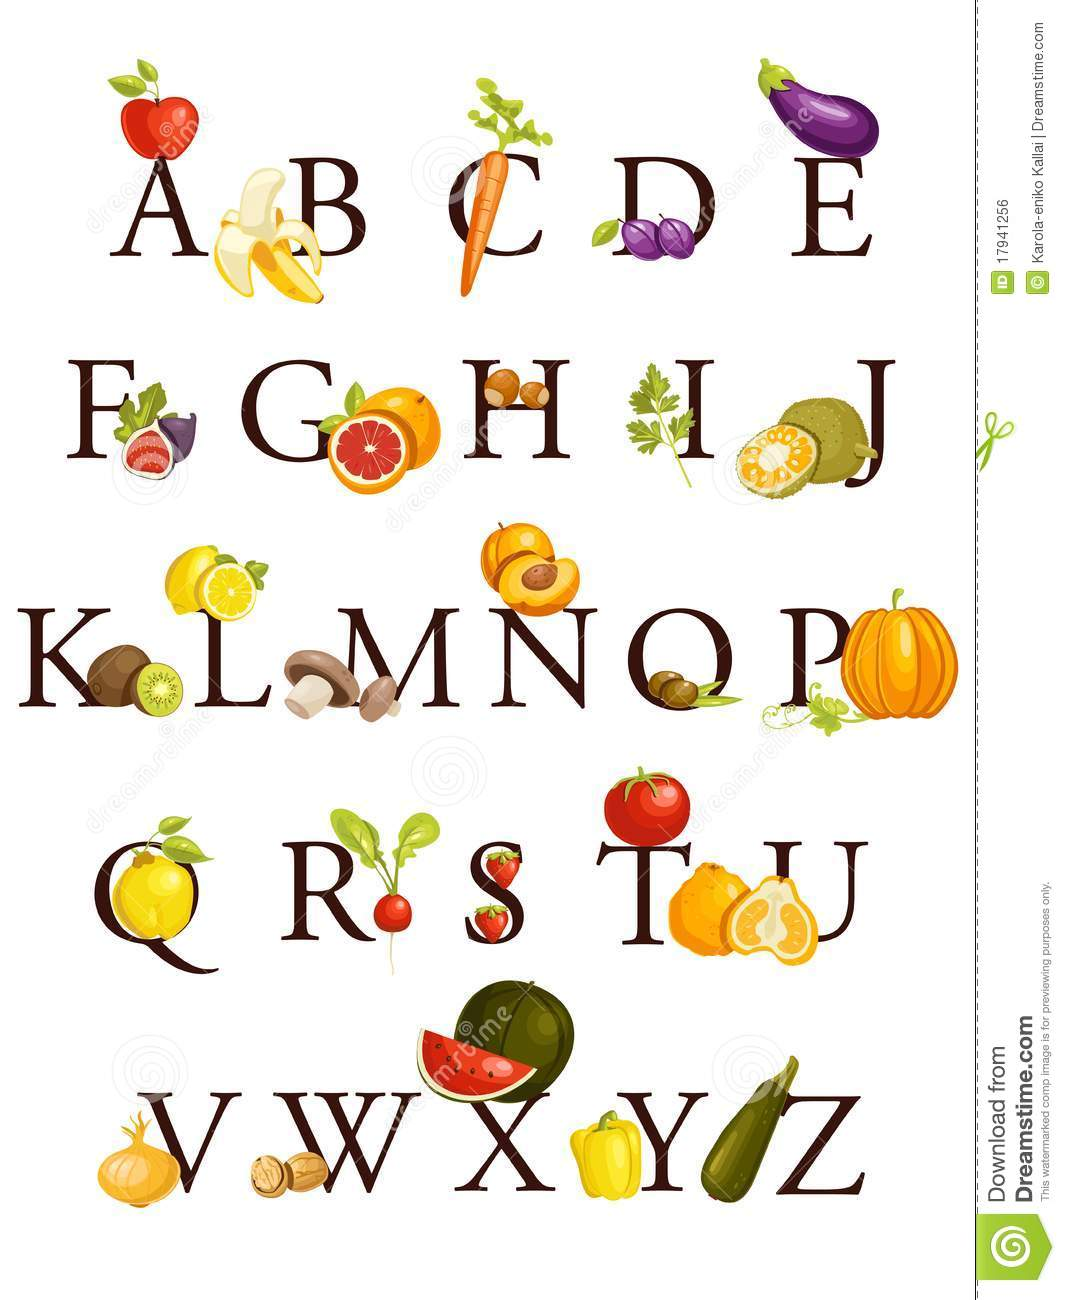 Kinds Of Vegetables Starts With Letter A